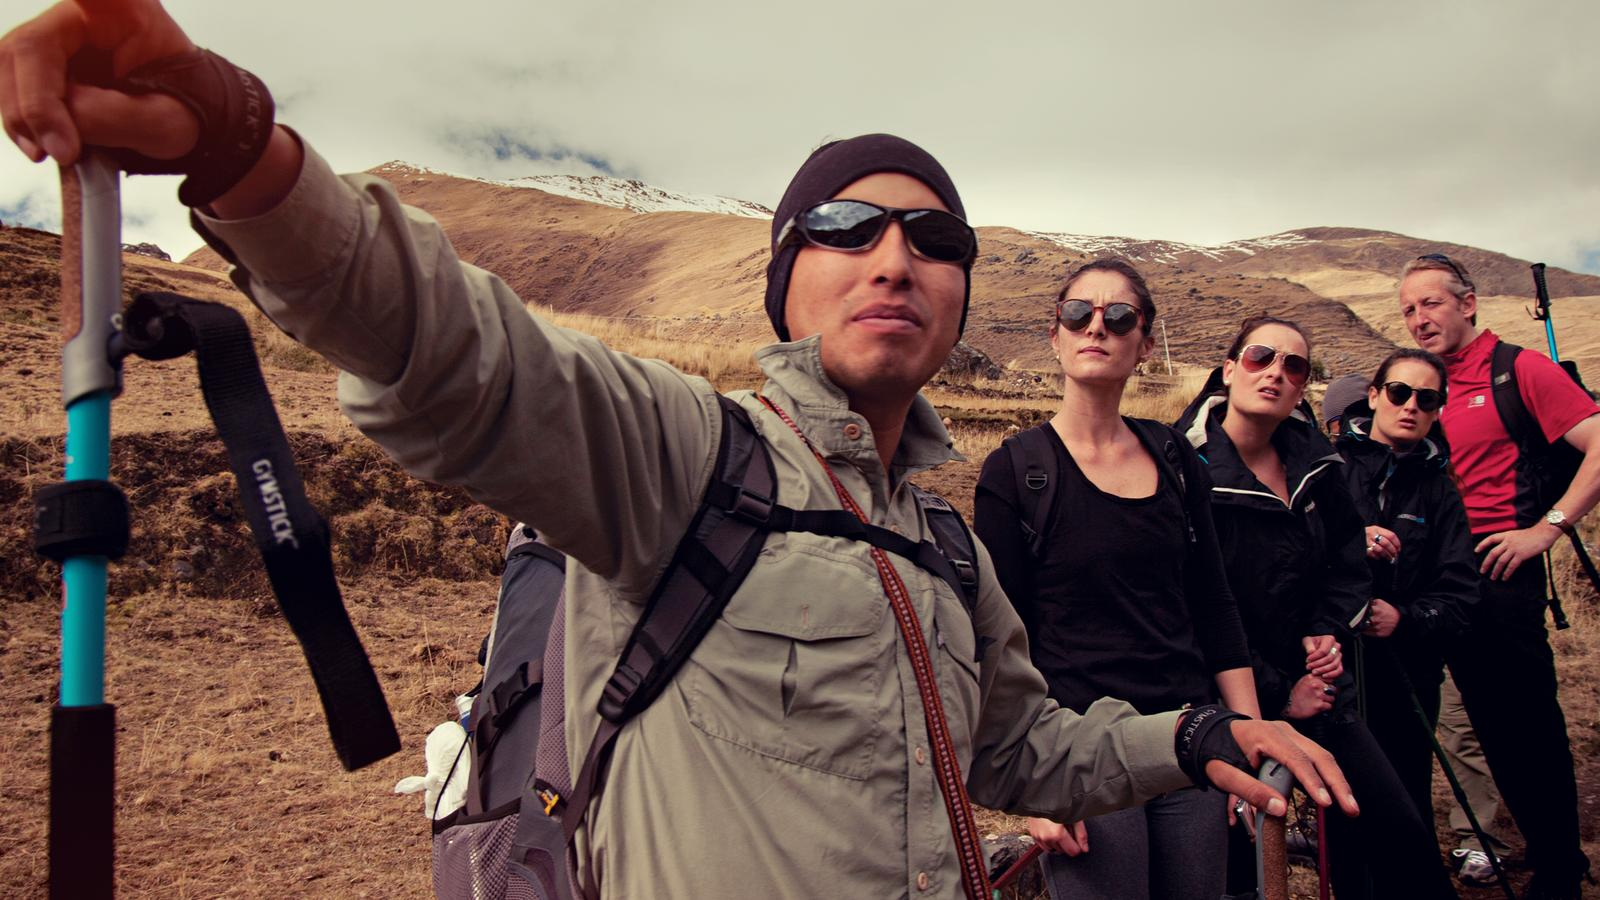 CEO leads the group through the Lares trek in Peru